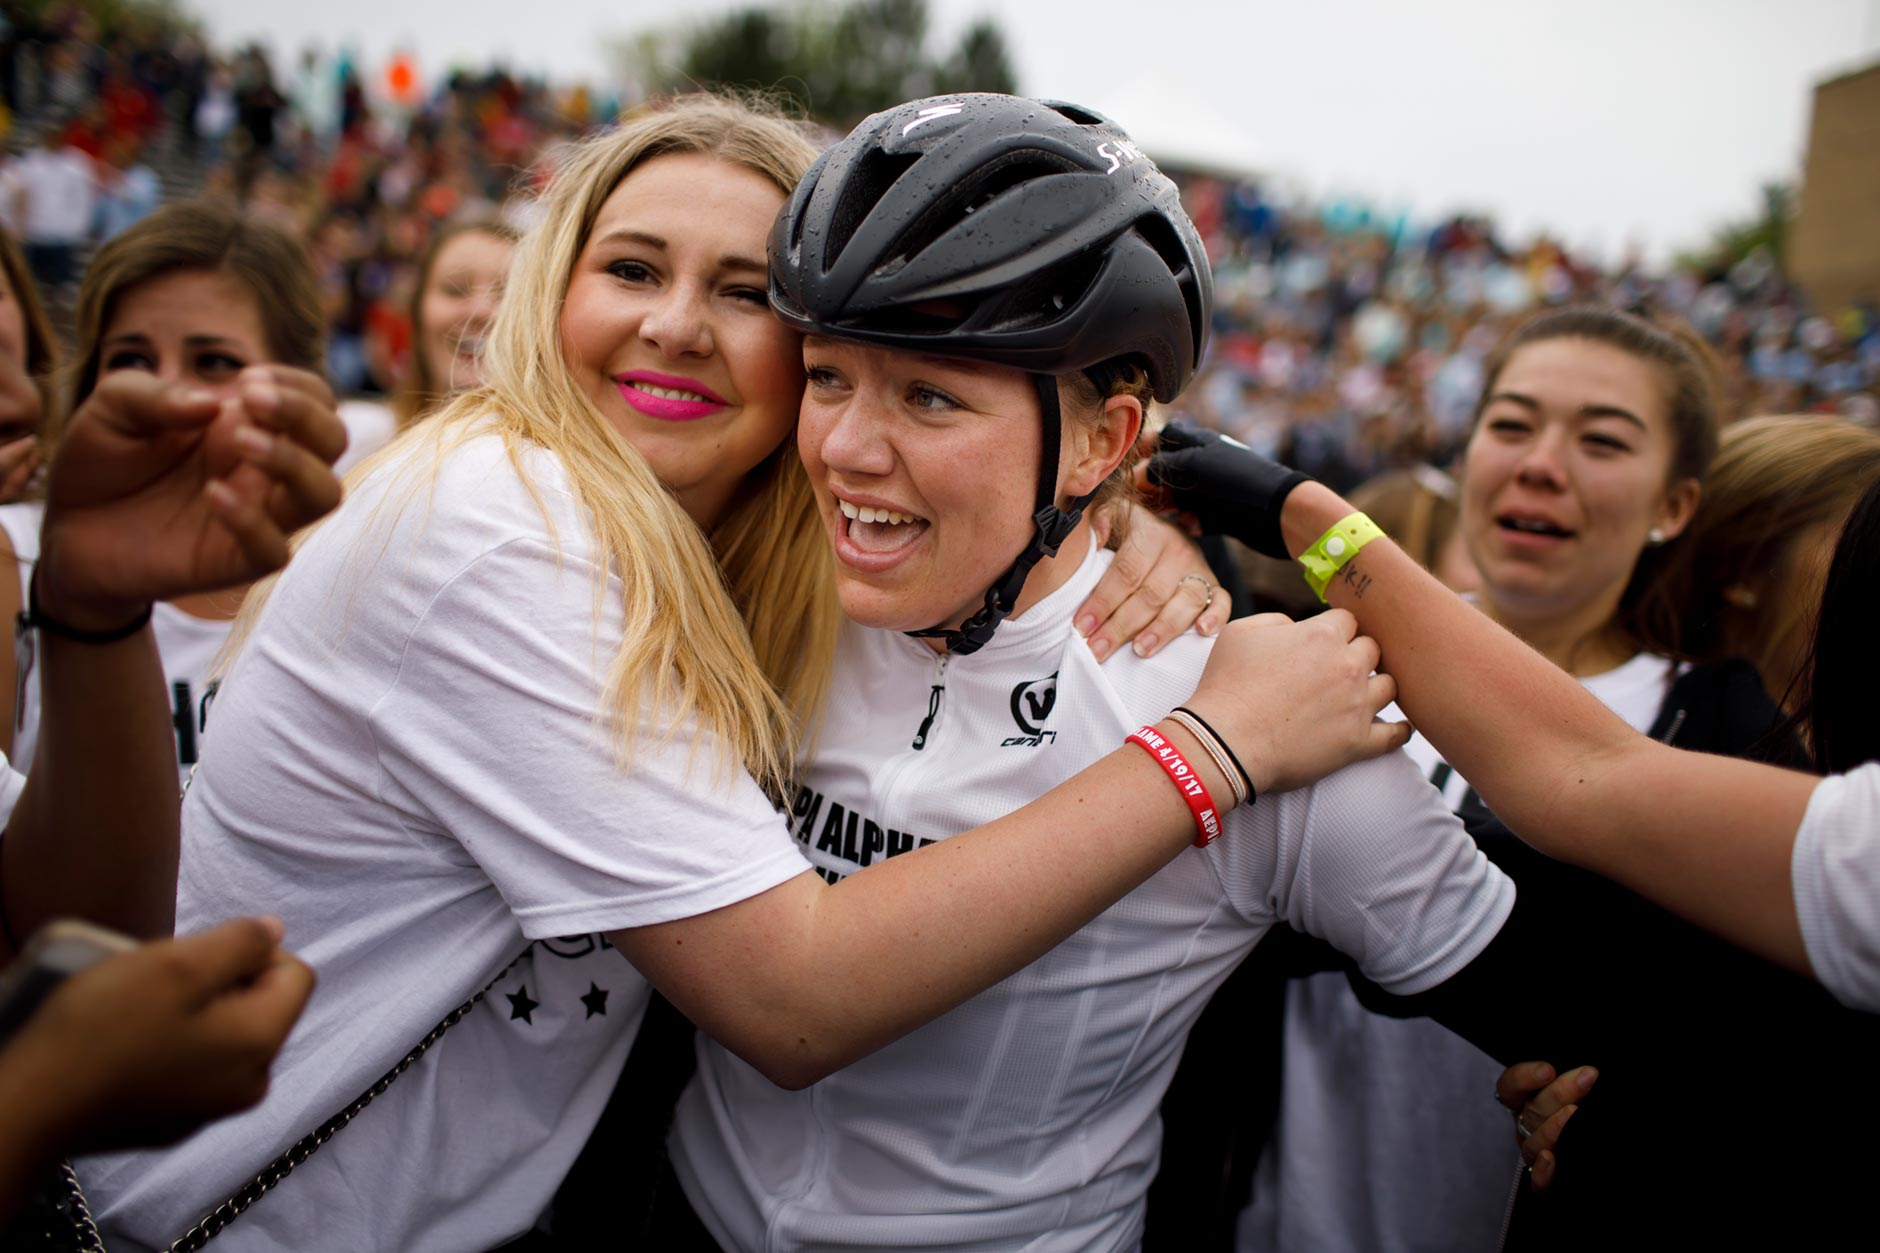 Sorority sisters swarm Kappa Alpha Theta rider Grace Bennett after the team won the Women's Little 500 at Bill Armstrong Stadium on Friday, April 21, 2017. (James Brosher/IU Communications)